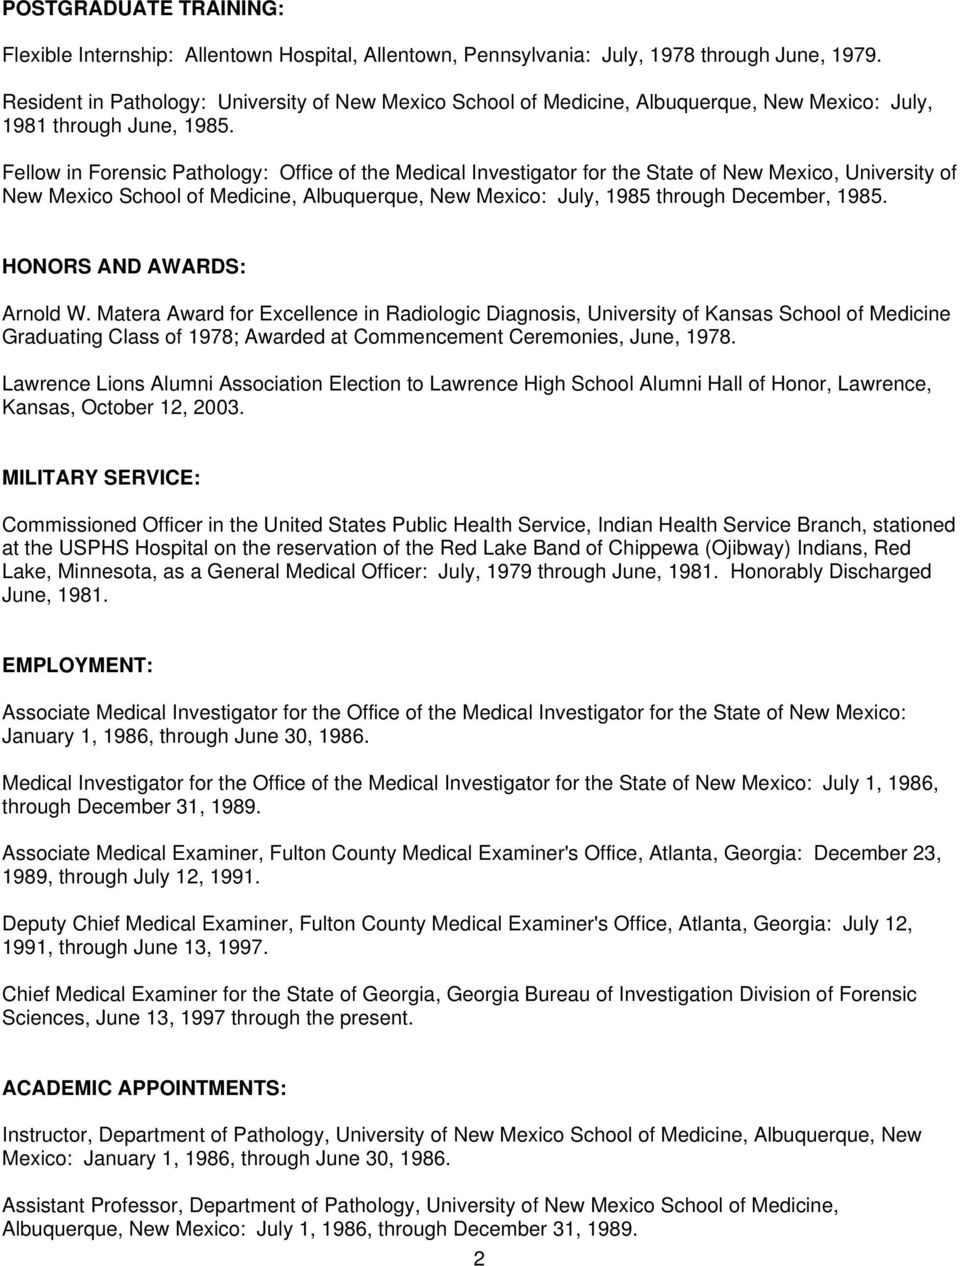 Fellow in Forensic Pathology: Office of the Medical Investigator for the State of New Mexico, University of New Mexico School of Medicine, Albuquerque, New Mexico: July, 1985 through December, 1985.